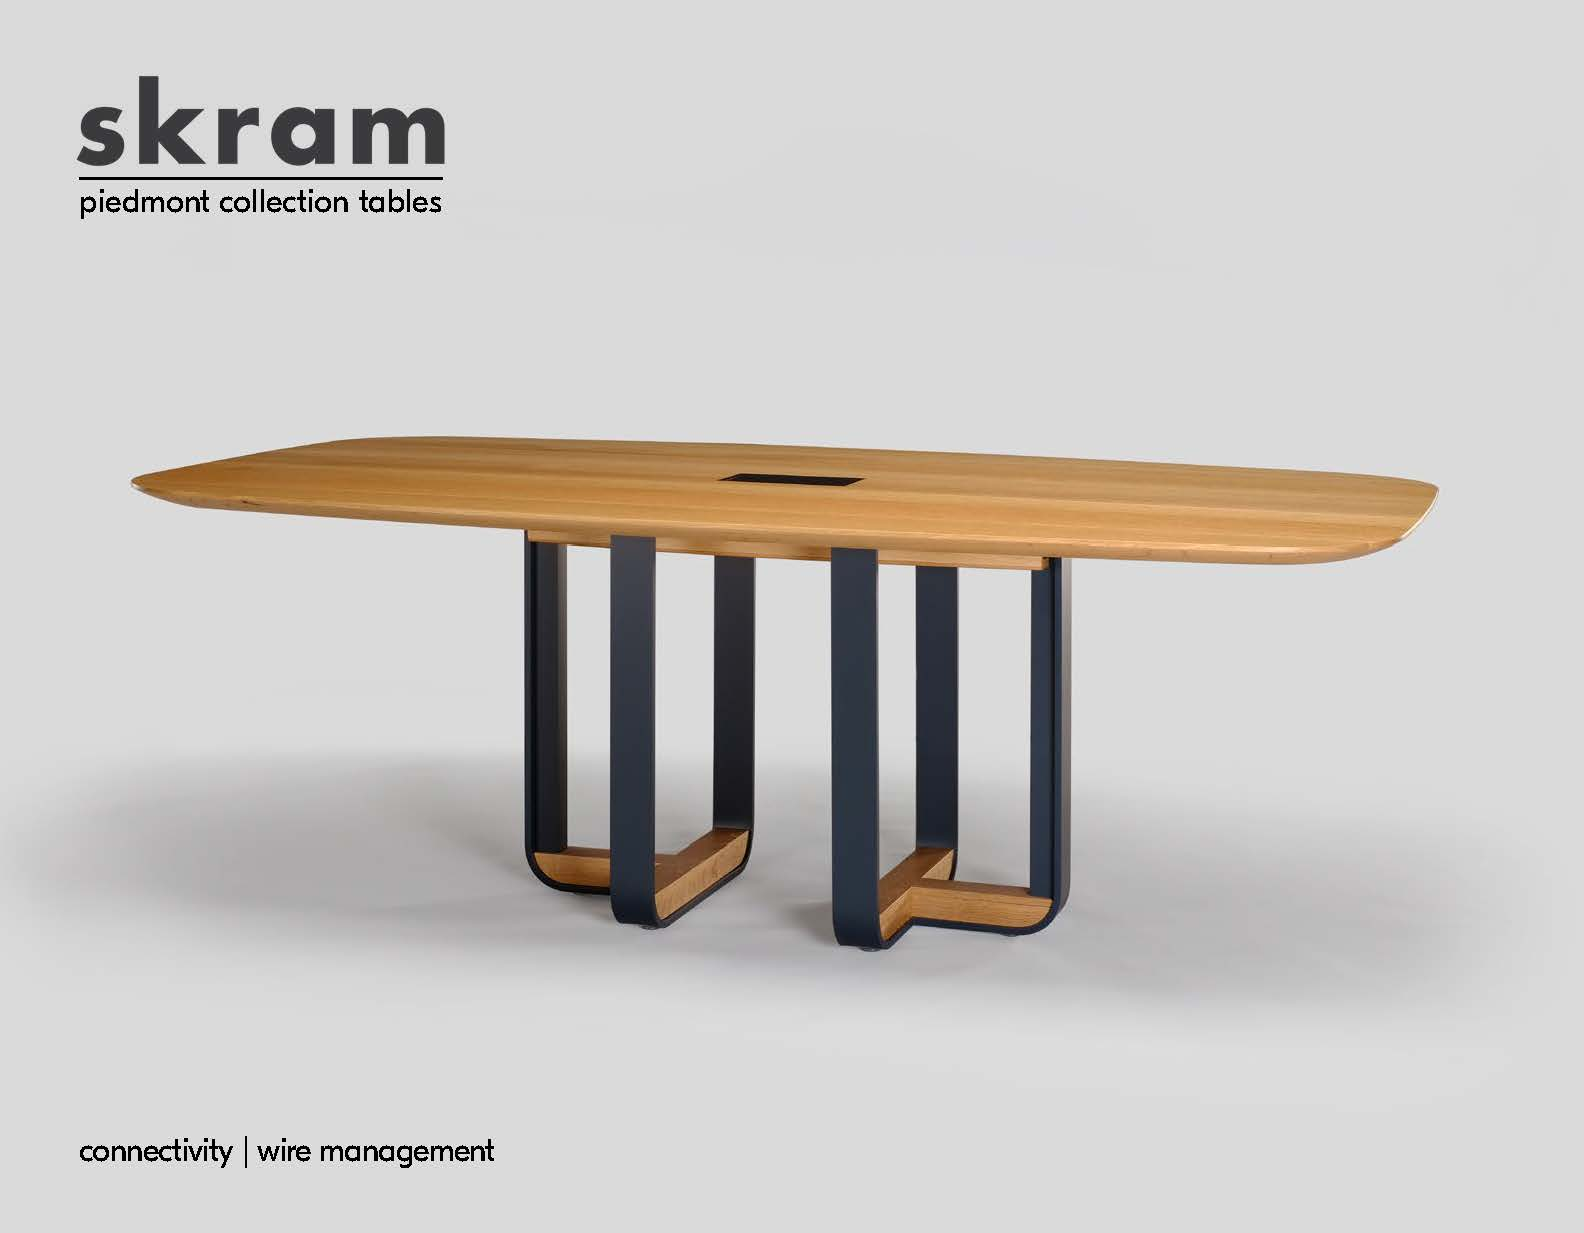 skram_Piedmont Collection Tables Catalog Cover